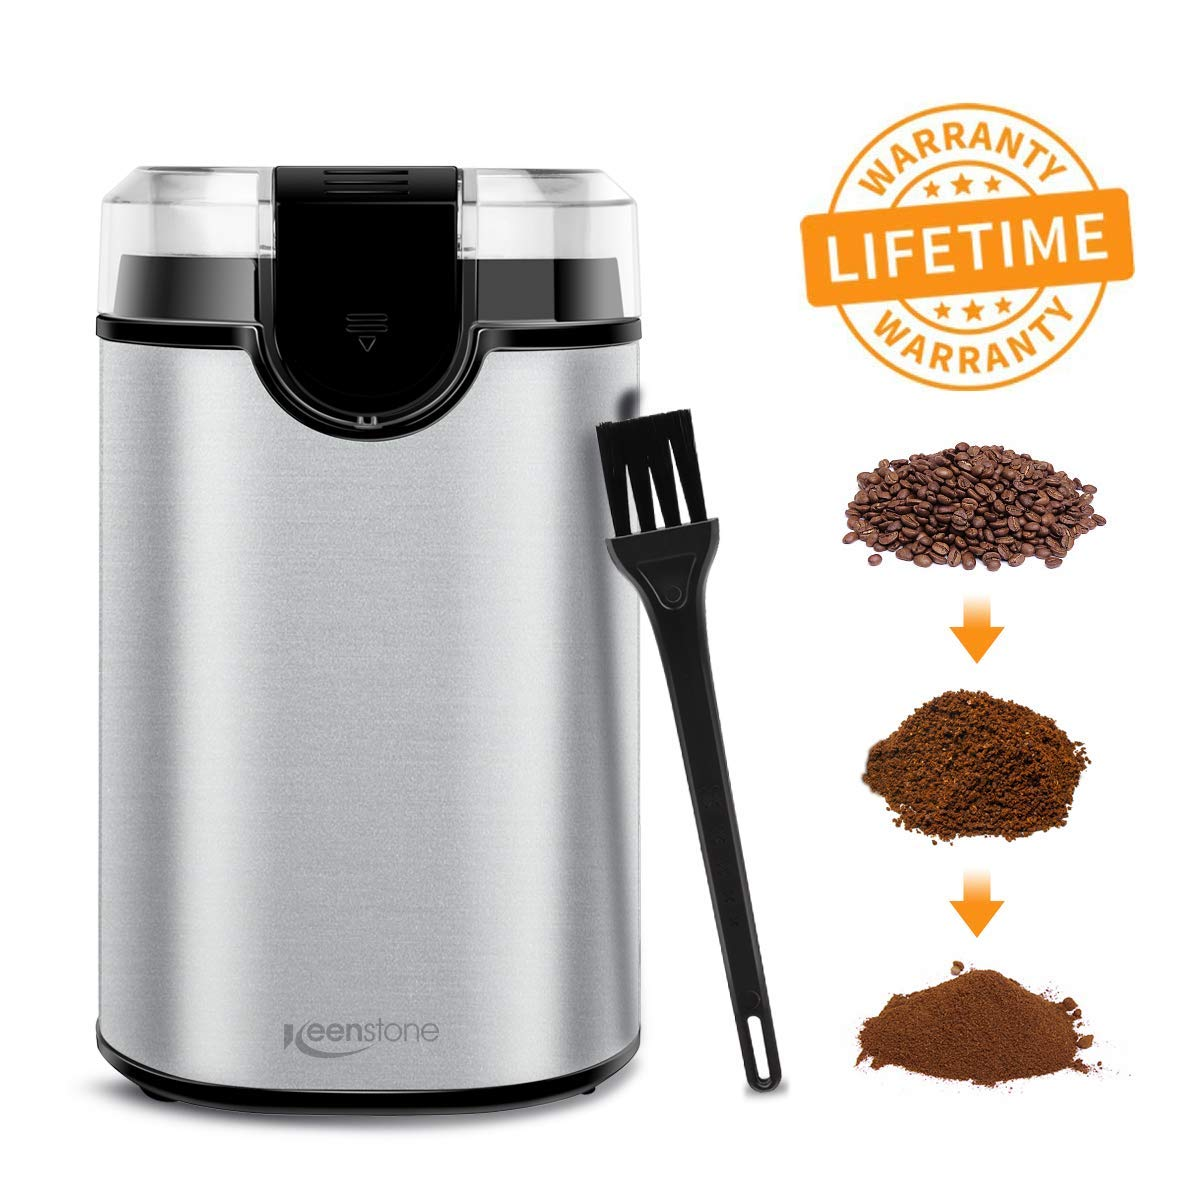 Coffee Grinder Electric, Spice Grinder Blade Grinders with Powerful Stainless Steel Blades and Cleaning Brush for Large Grinding Coffee Beans, Seed Nuts, Grains, Spices Herb Pepper【Lifetime Warranty】 by